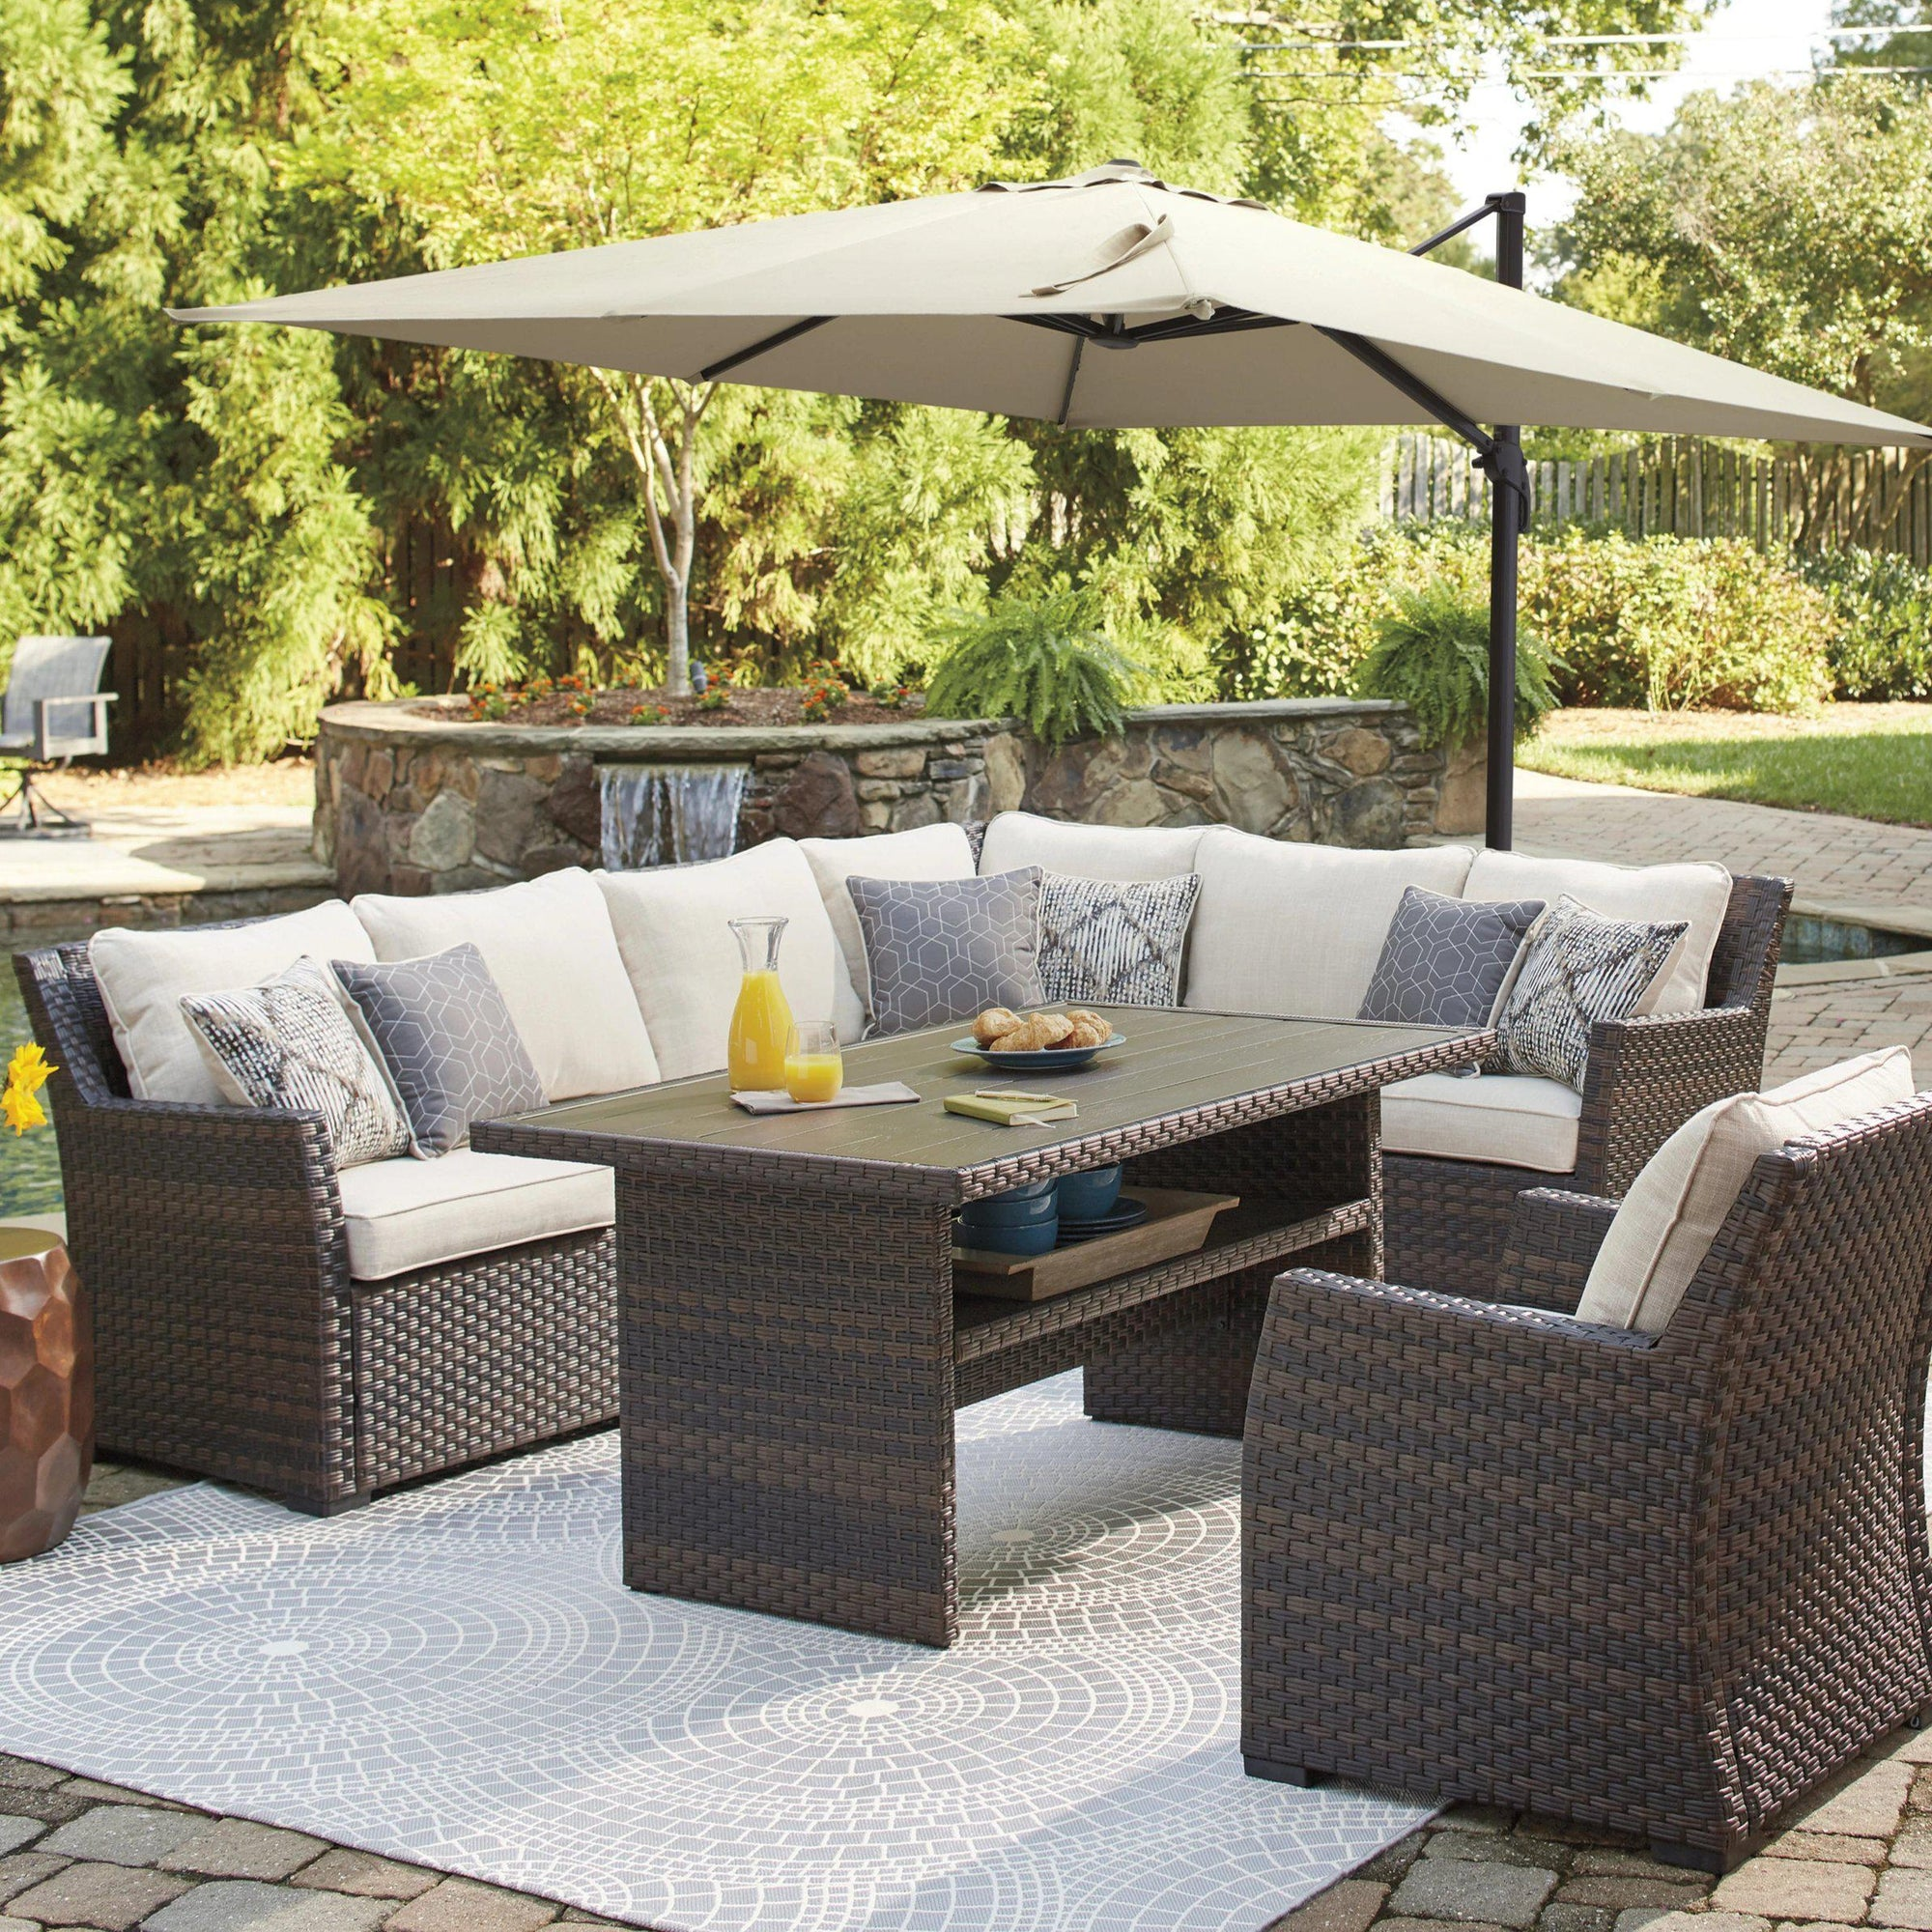 Sausalito 4-Piece Outdoor Comfy Banquette Seating Set